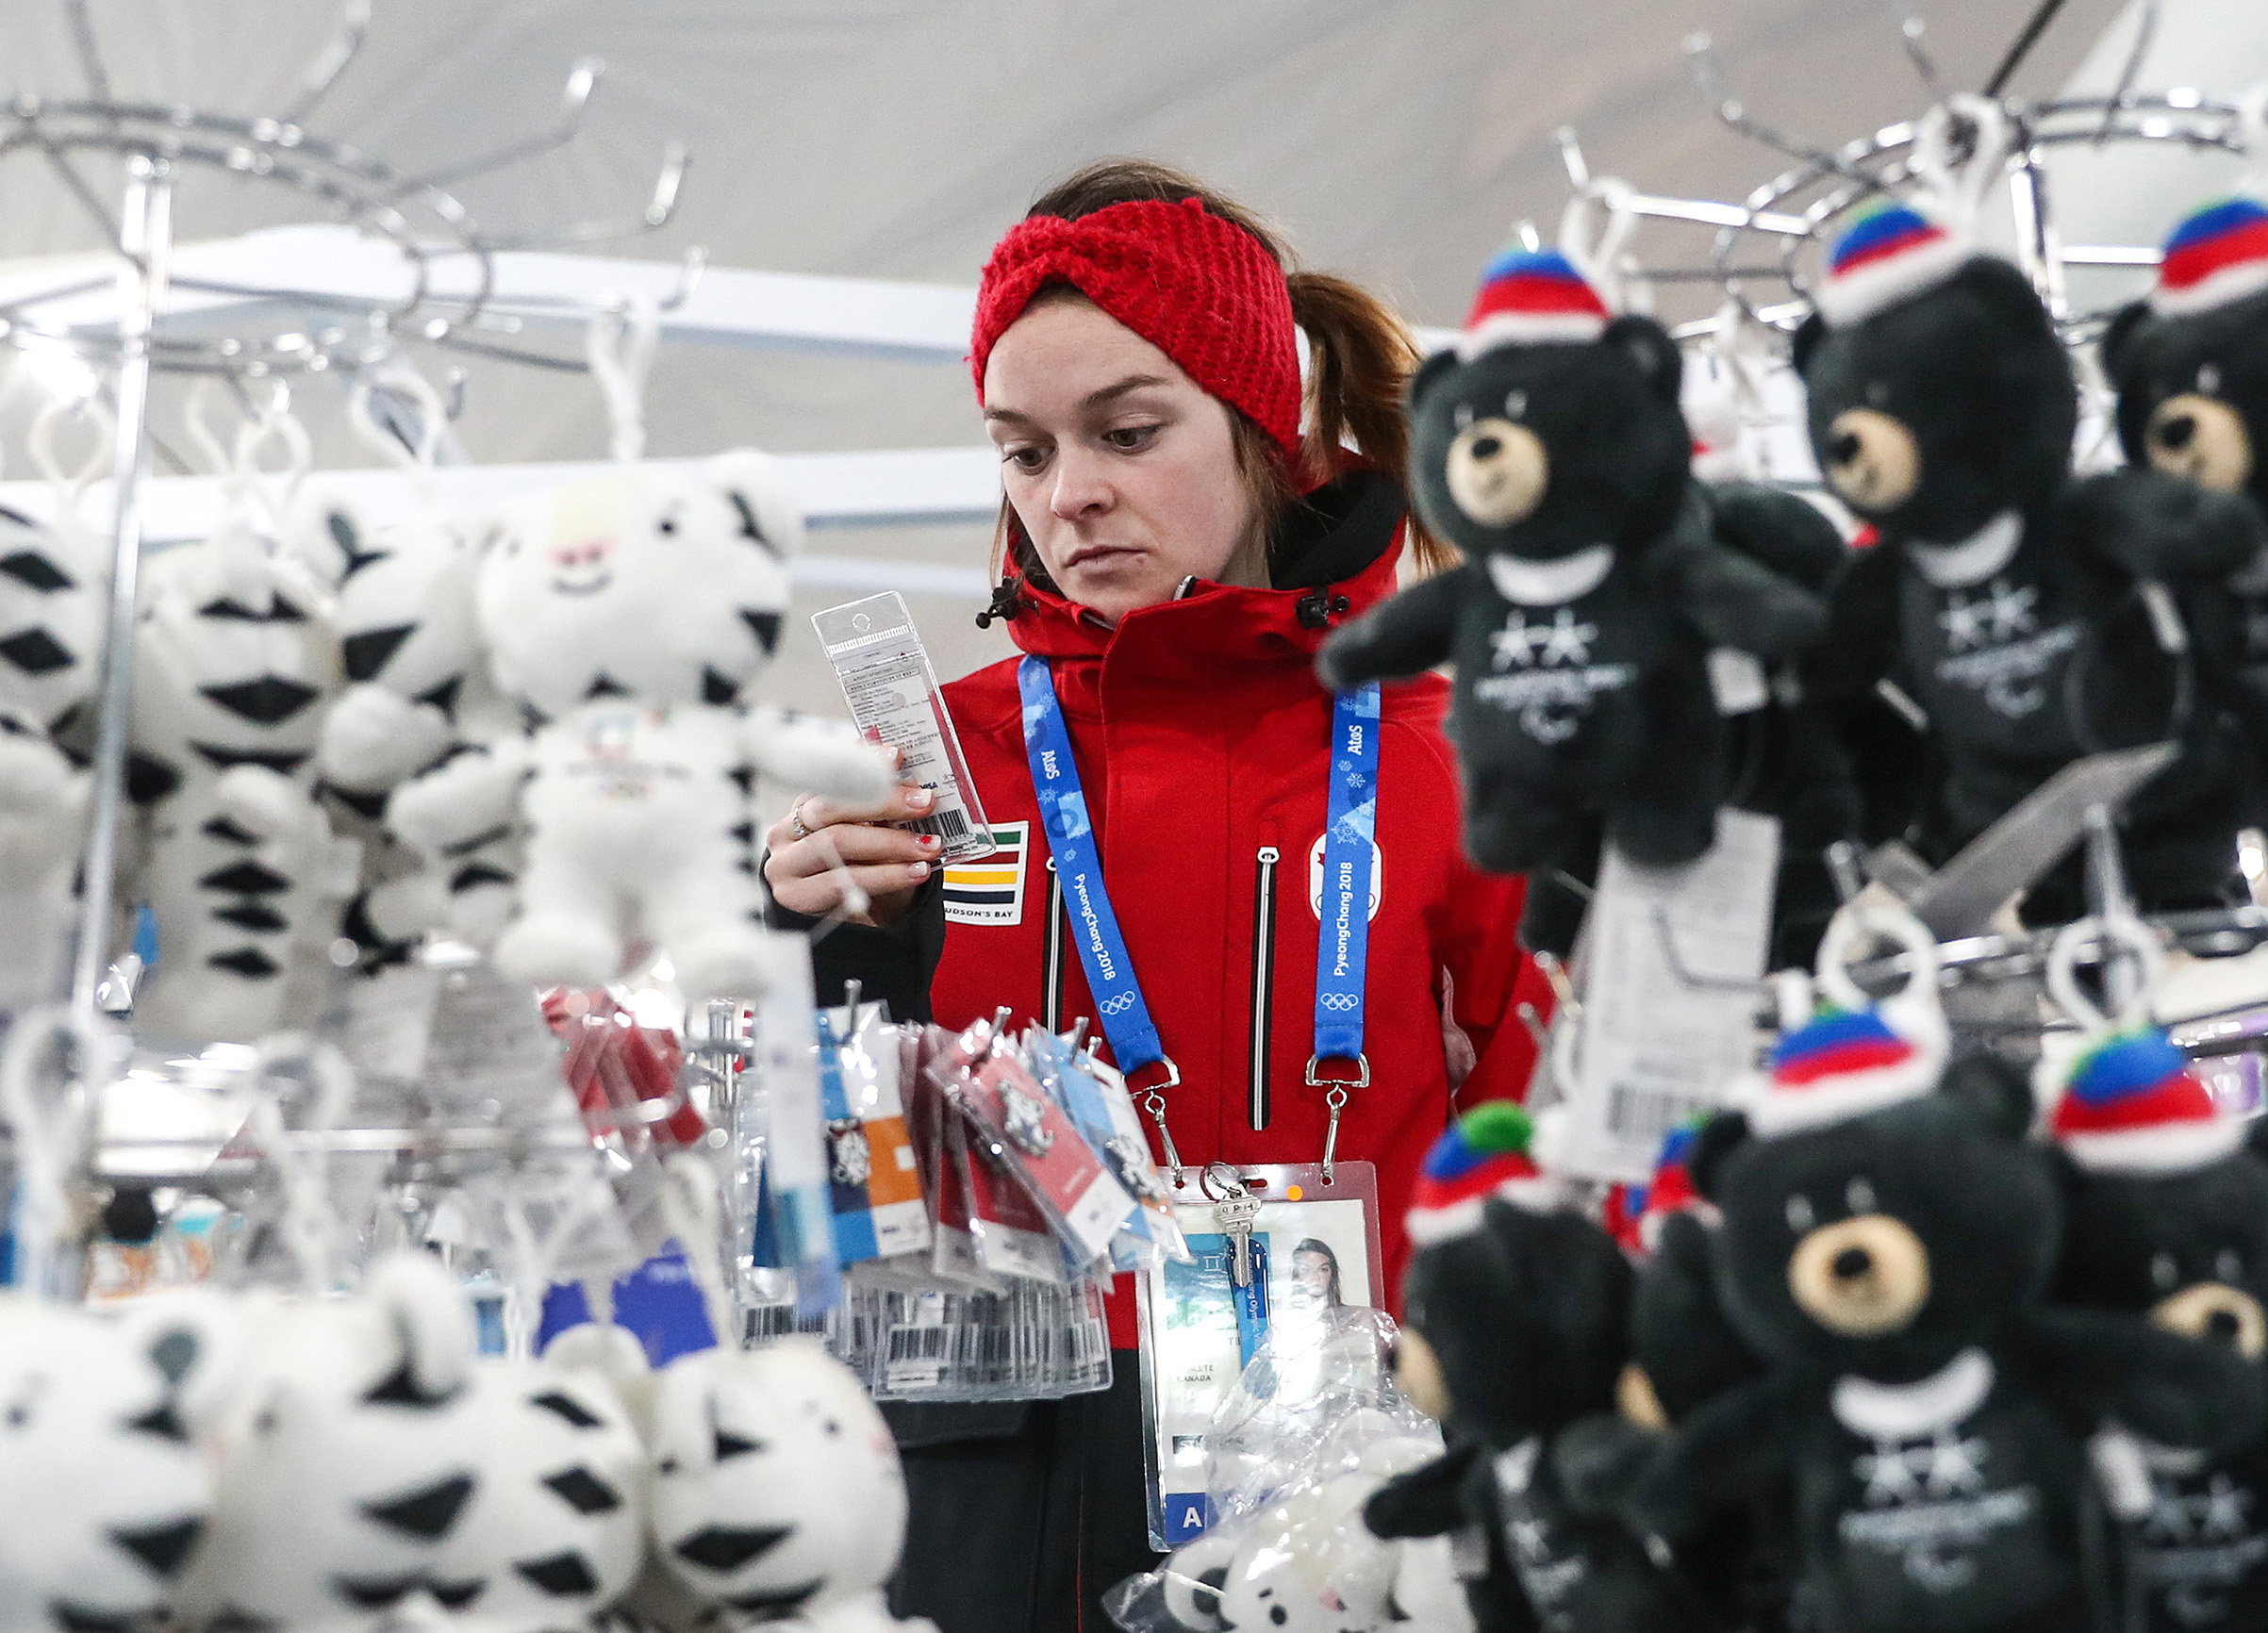 A girl seen by suffed toys of Soohorang and Bandabi, the official mascots of the 23rd Winter Olympic Games and the 12th Winter Paralympic Games in Pyeongchang respectively, on sale in the Olympic Village ahead of the 2018 Winter Olympic Games.